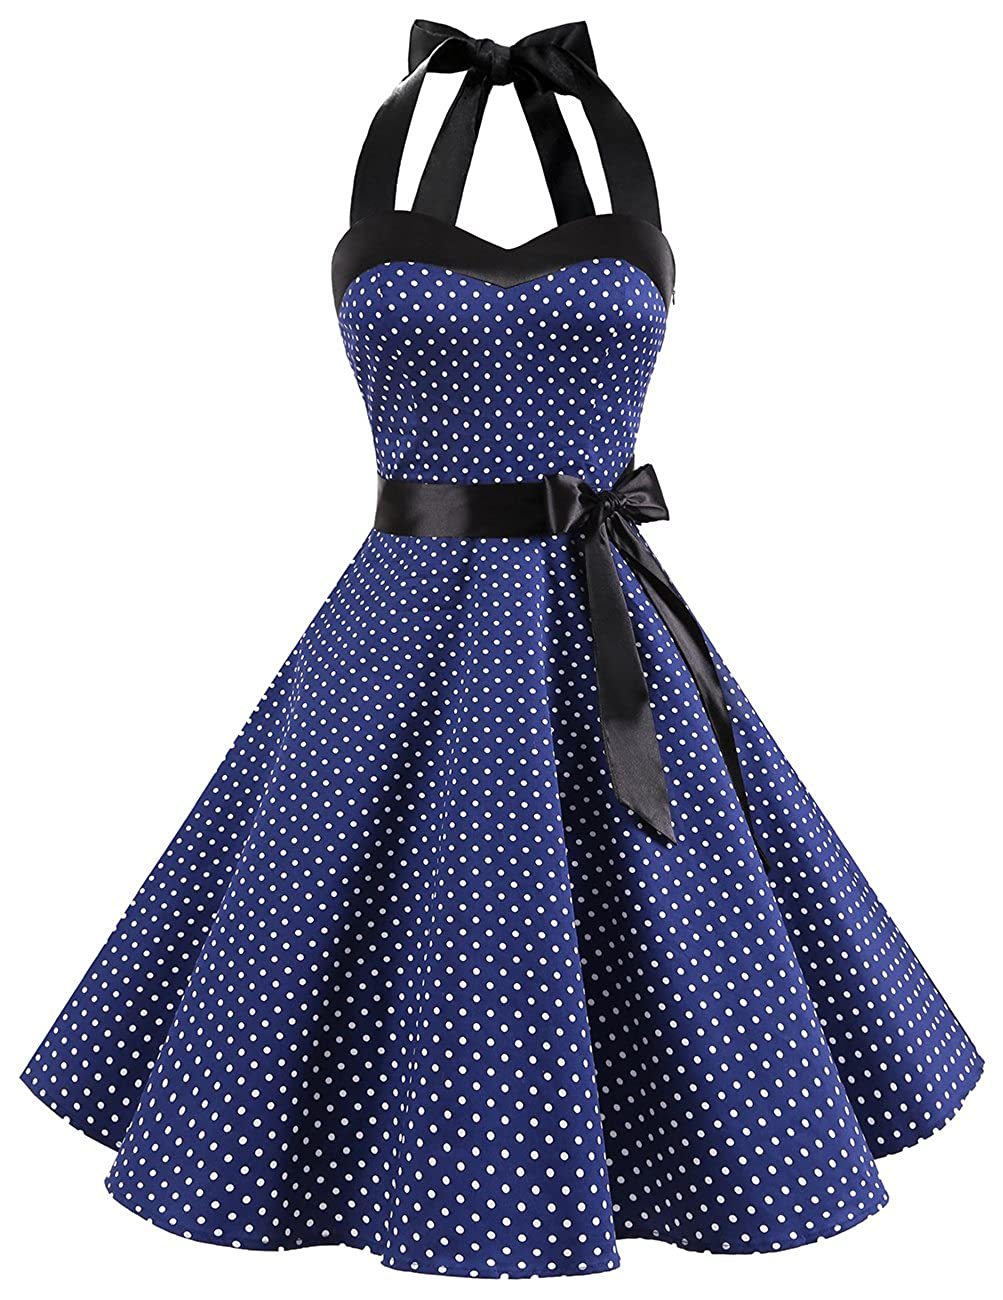 TALLA XS. Dresstells® Halter 50s Rockabilly Polka Dots Audrey Dress Retro Cocktail Dress Navy White Dot XS